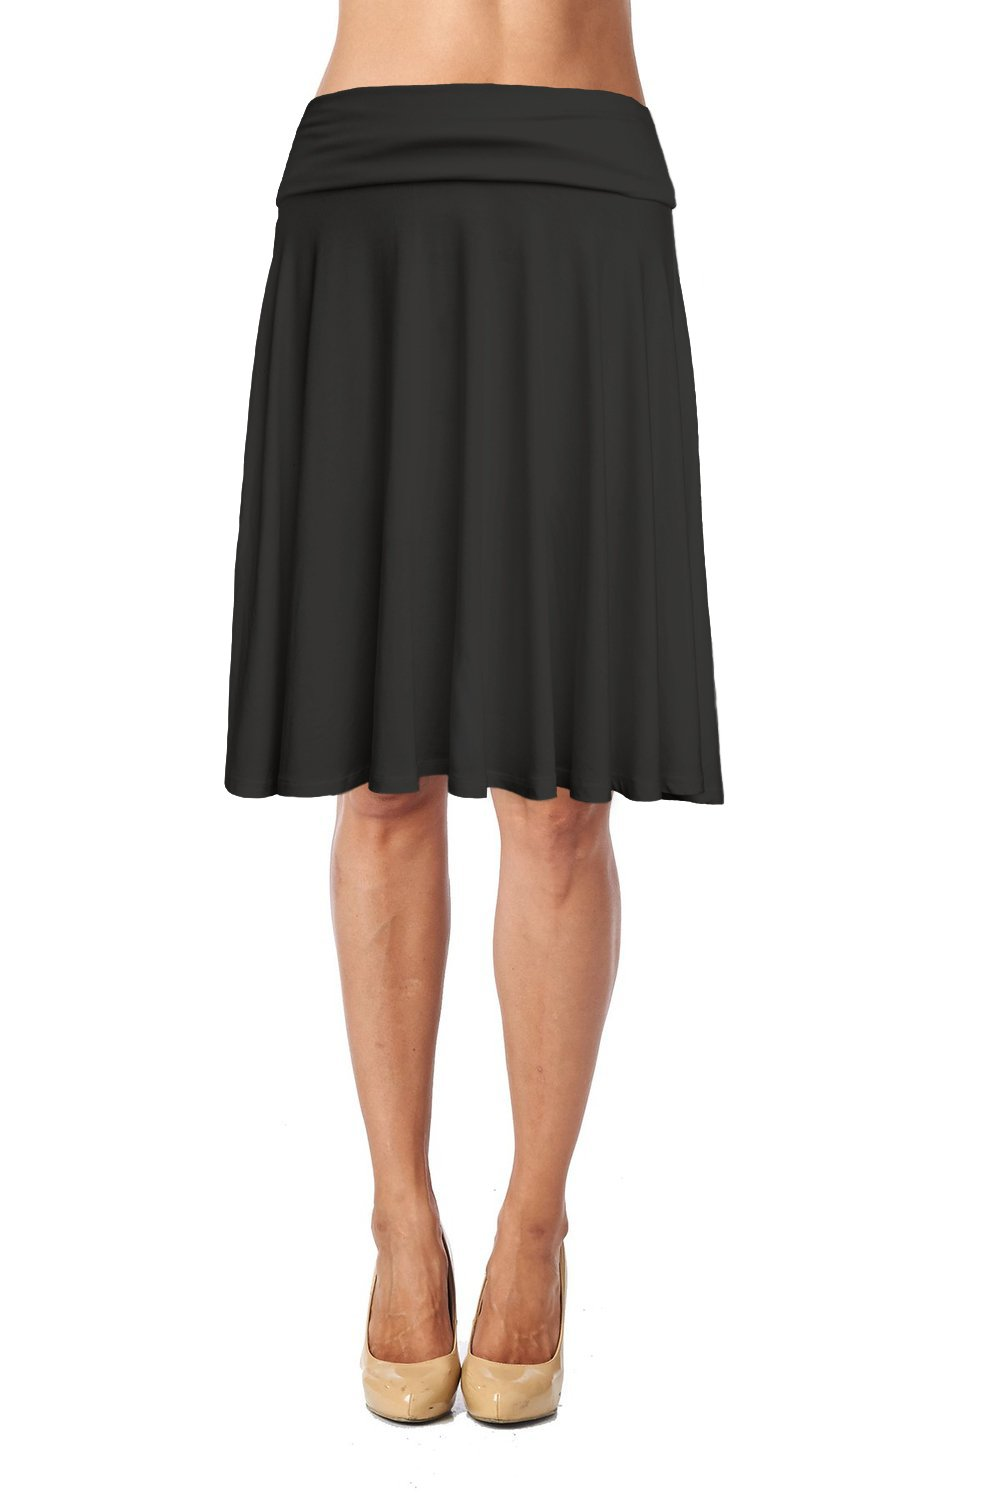 Jubilee Couture Womens Basic Soft Stretch Mid Midi Knee Length Flare Flowy Skirt Made in USA-Black,Medium